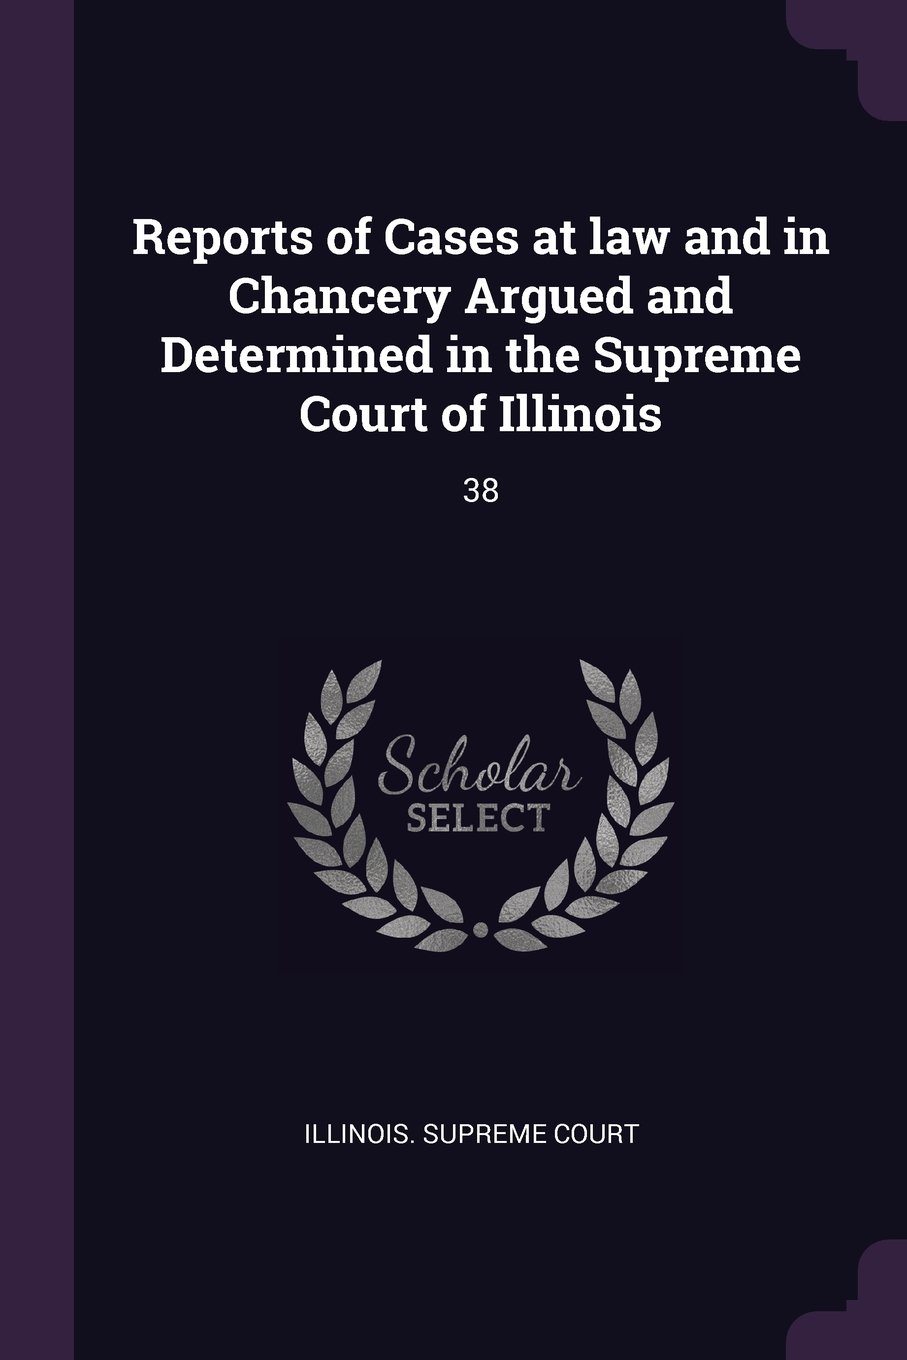 Download Reports of Cases at law and in Chancery Argued and Determined in the Supreme Court of Illinois: 38 ebook